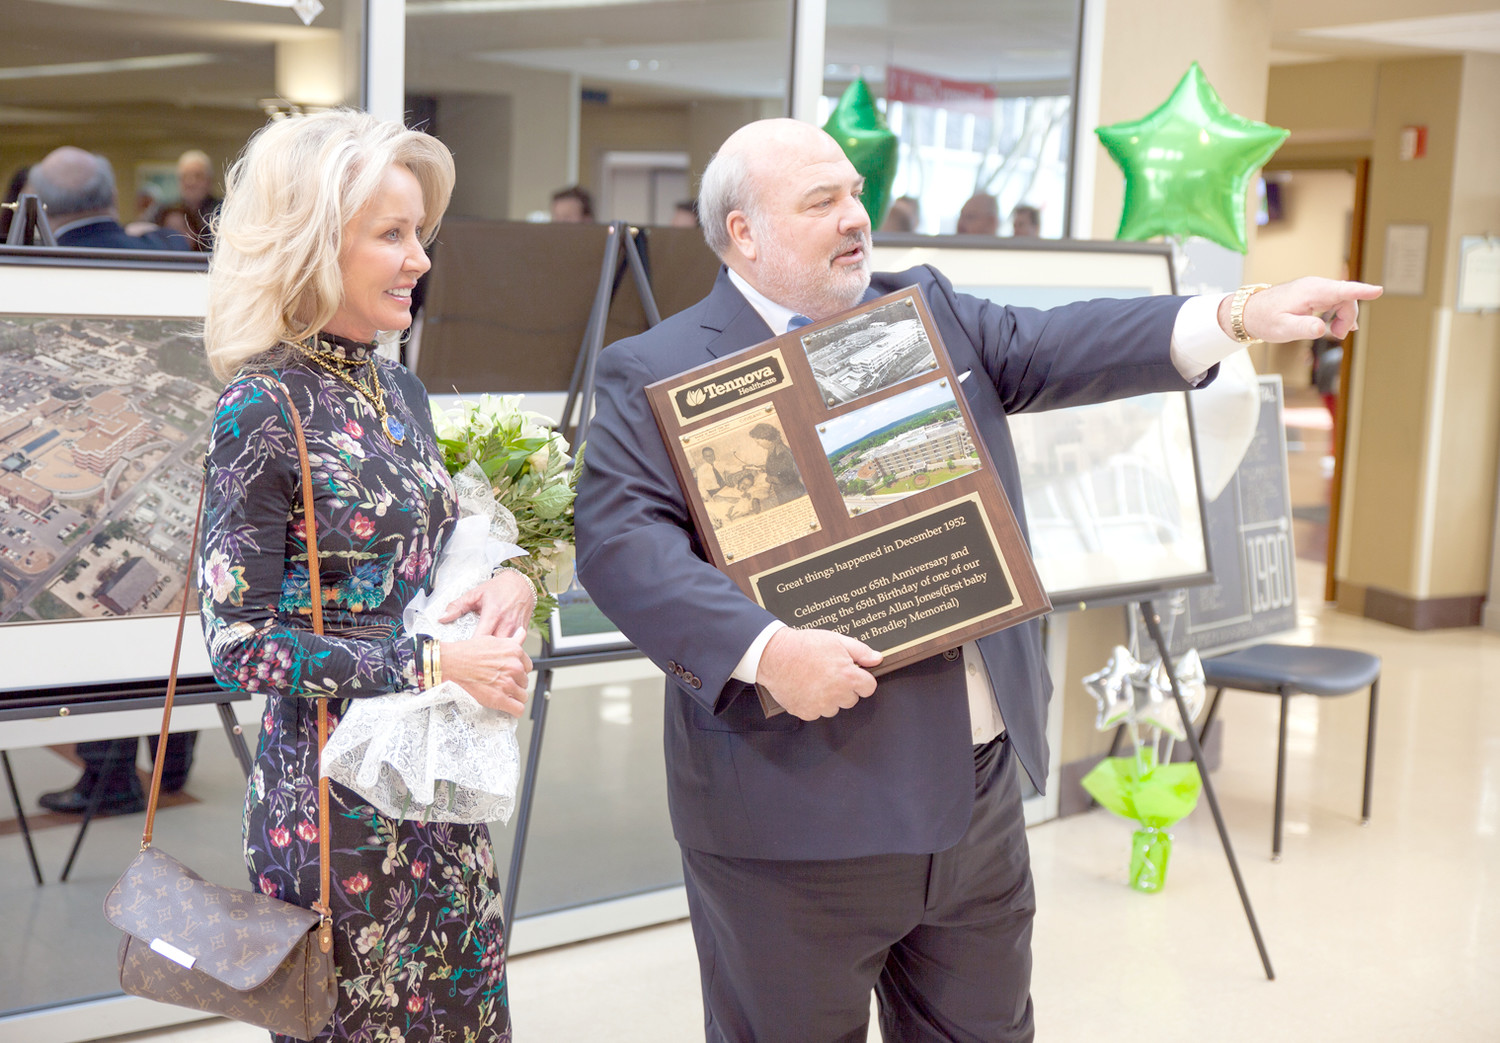 ALLAN JONES, right, points to the crowd while accepting a plaque honoring him as the first baby born at Tennova Healthcare, then known as Bradley County Memorial Hospital. Jones' wife, Janie Jones, left, was also honored as the first mother who gave birth in the new women's center, in 1984.